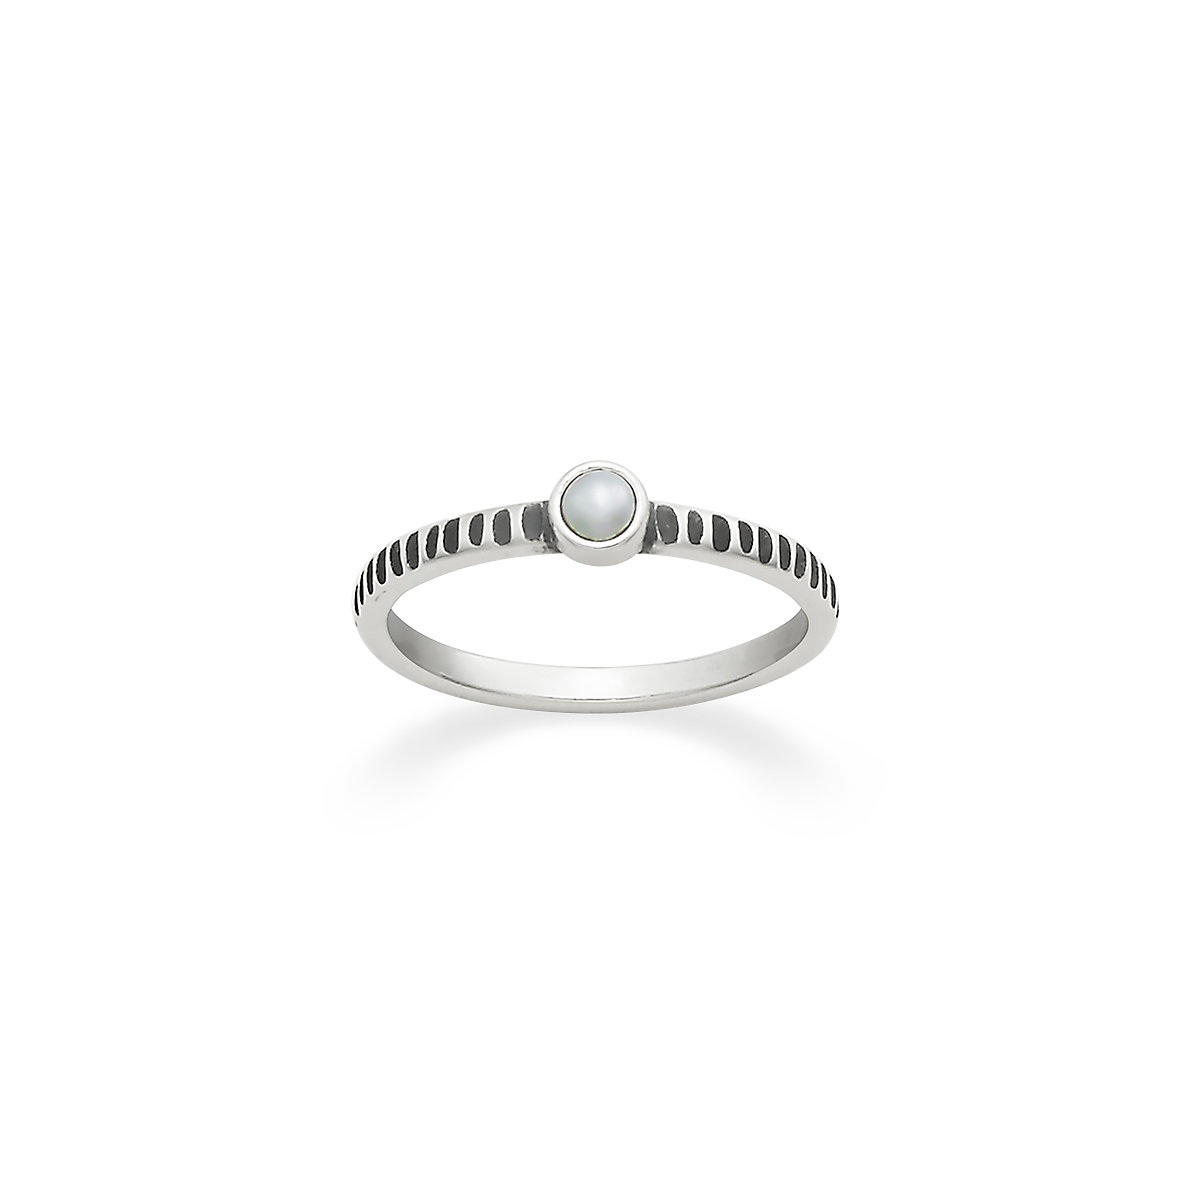 tiny cultured pearl ring - James Avery Wedding Rings